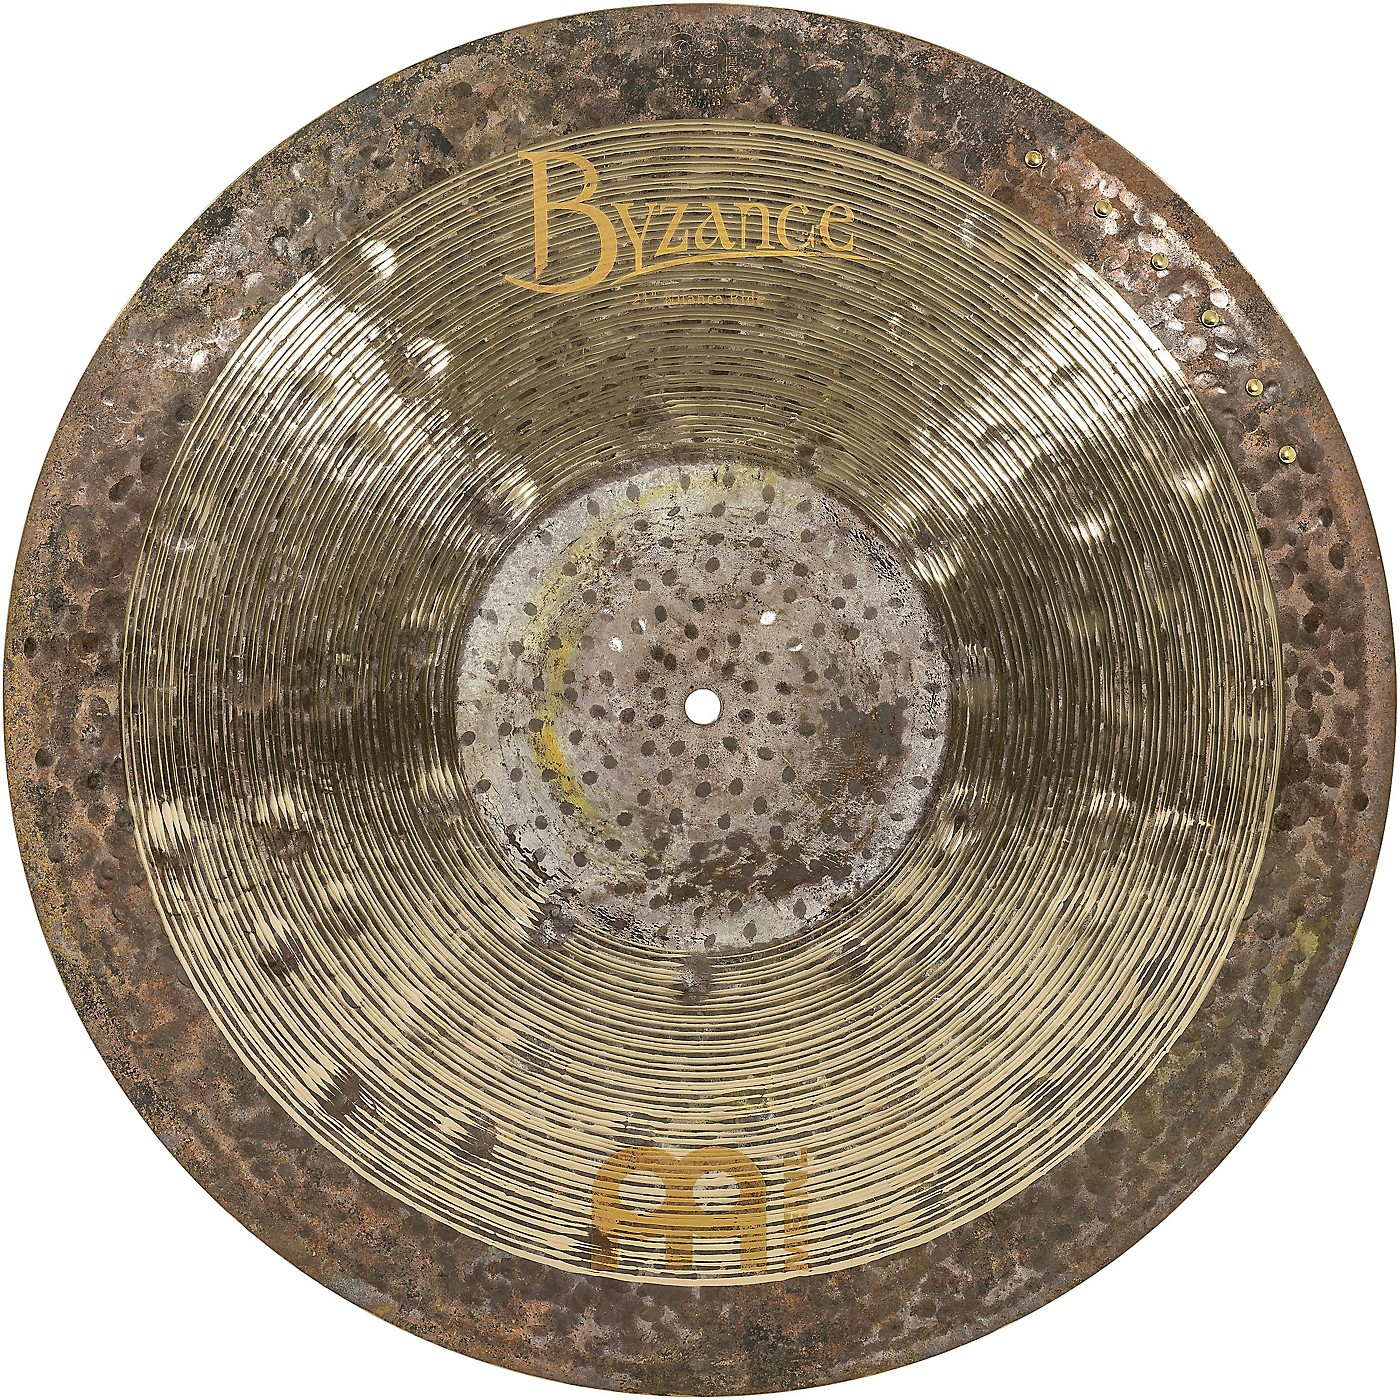 Meinl Byzance Jazz Ralph Peterson Signature Nuance Ride Cymbal with Rivets thumbnail